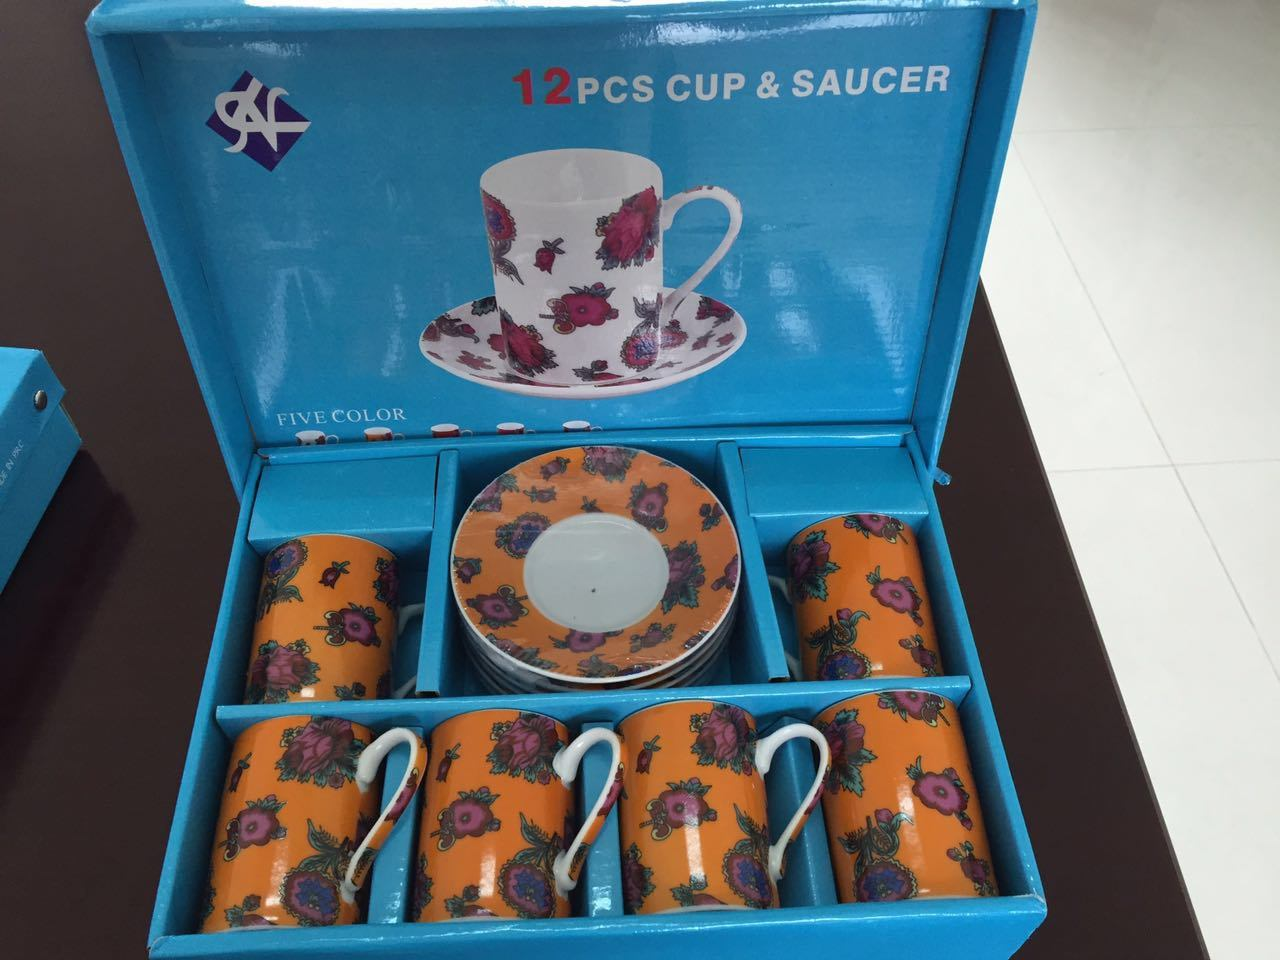 Japaness Style 12 PCS Fine Porcelain Cup and Saucer